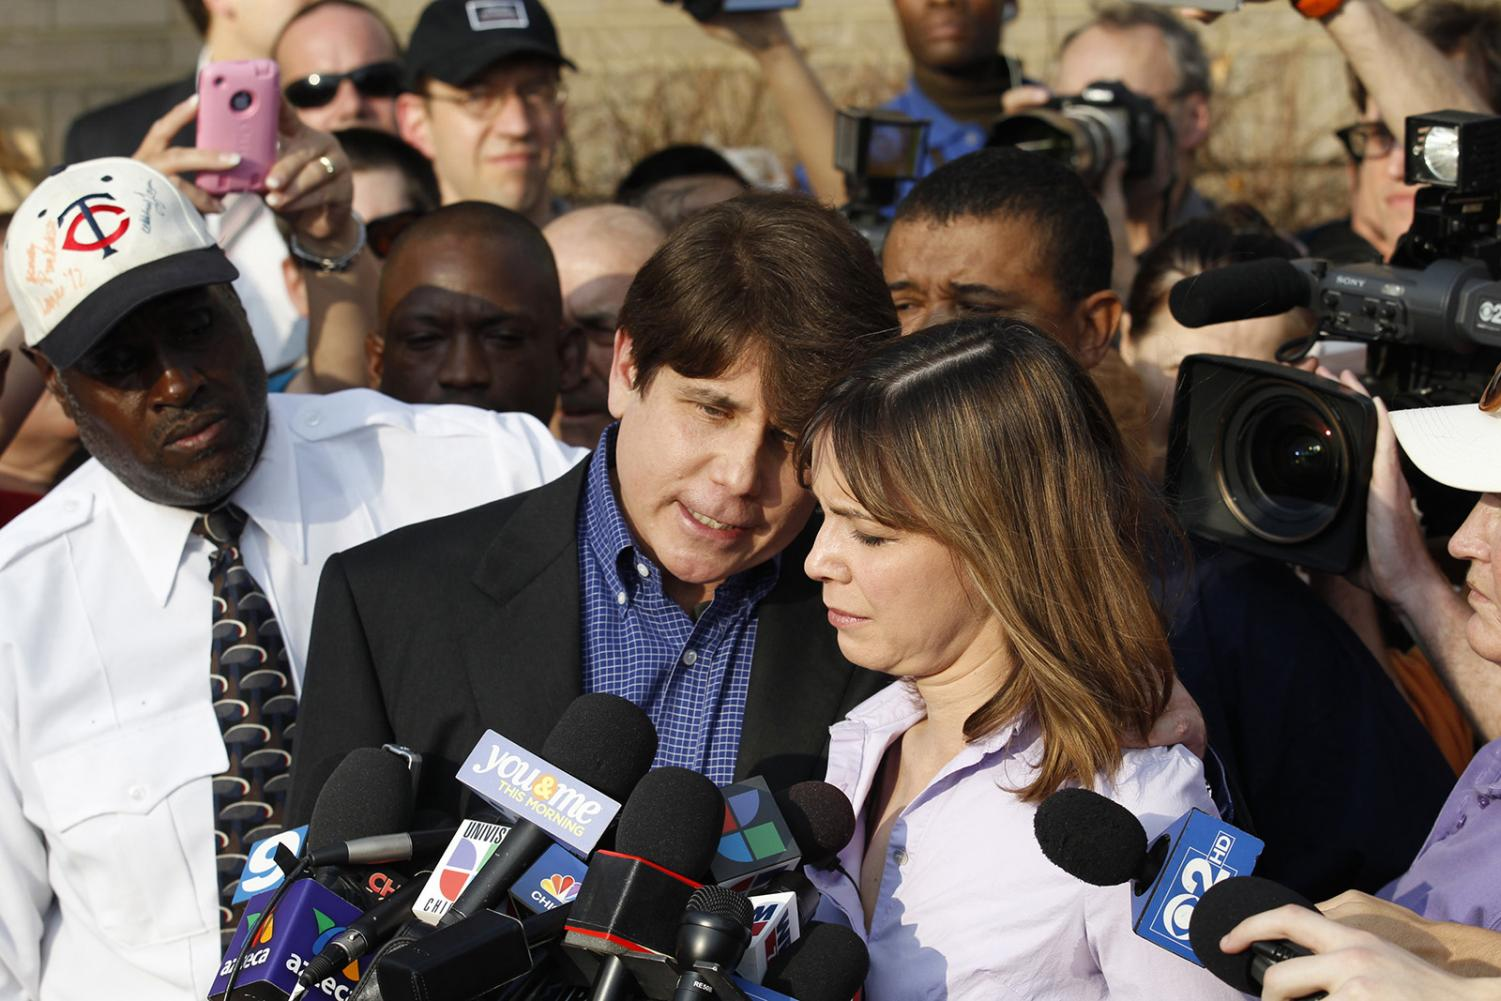 Former Illinois Gov. Rod Blagojevich delivers a statement with his wife, Patti, at his side, on his last full day of freedom at his home on Wednesday, March 14, 2012 in Chicago, Ill.